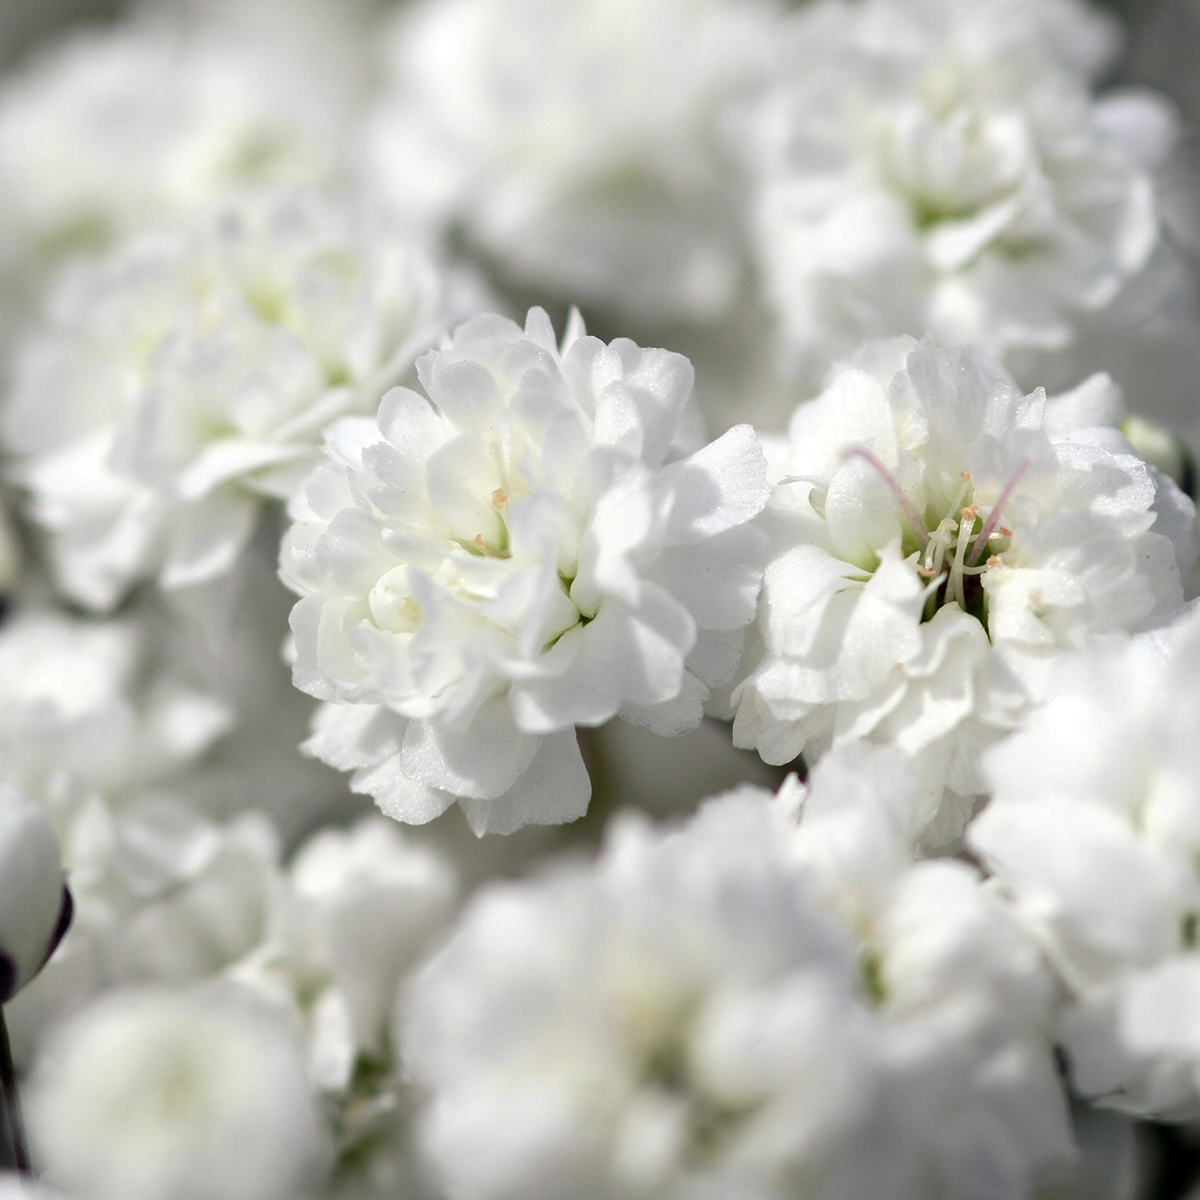 Xlence Gypsophila Babys Breath Wholesale Blooms By The Box